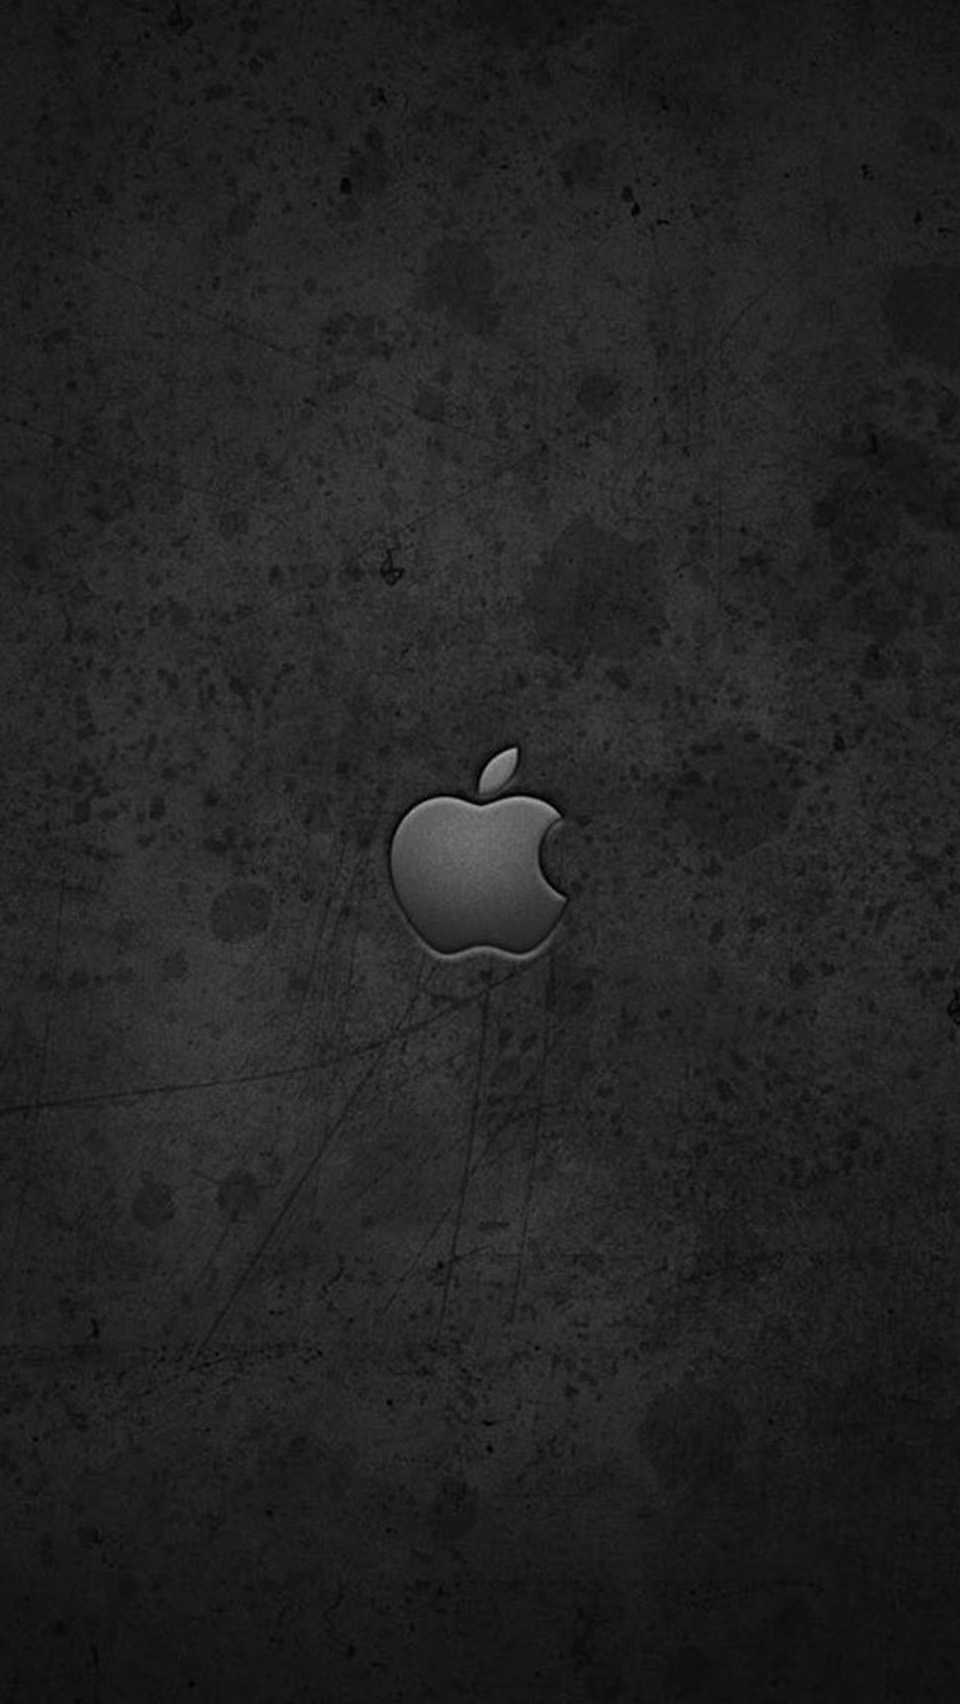 Black Apple Logo Wallpaper For Iphone 6 photos of Iphone Wallpaper 960x1704